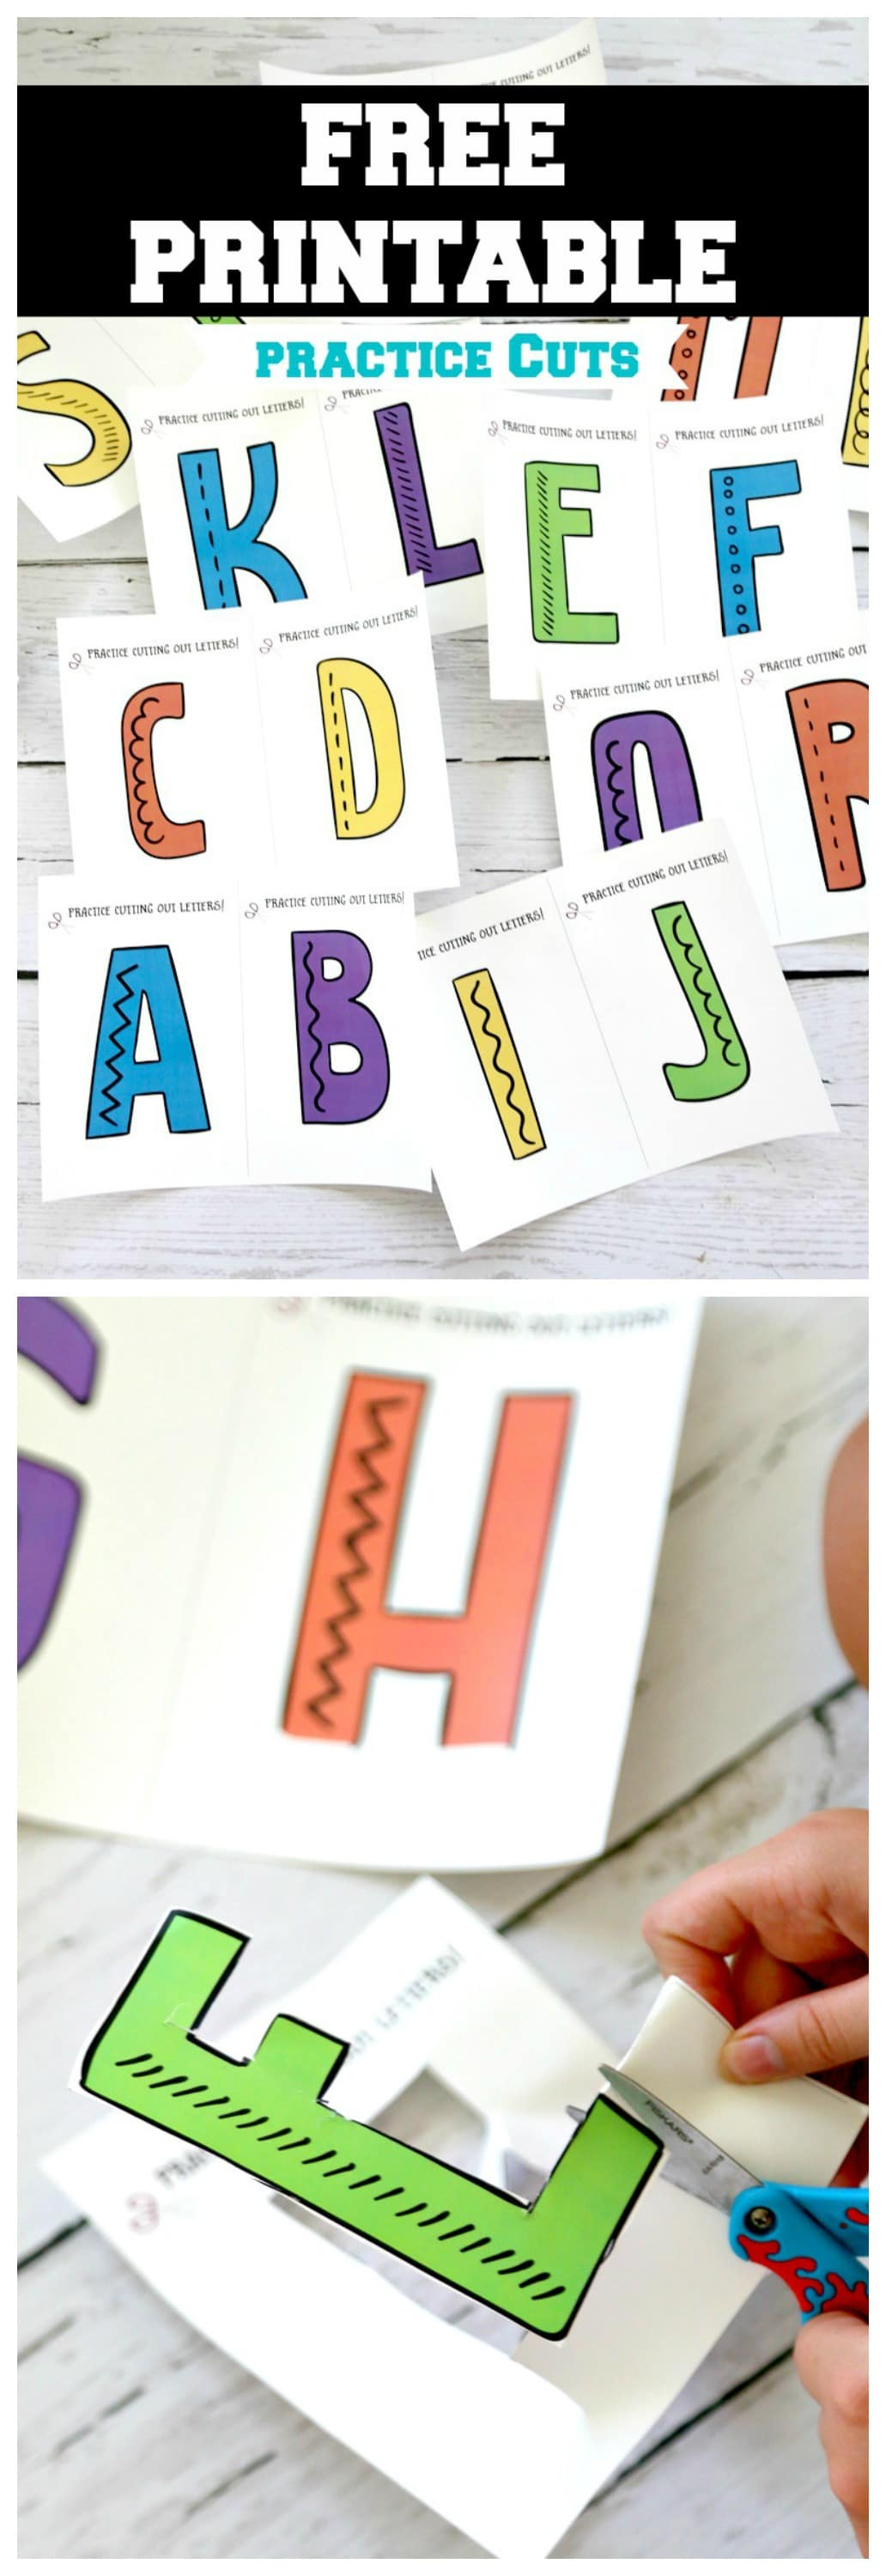 Scissor Skills : FREE PRINTABLE, practice preschool, Kindergarten and beyond scissor fine motor skills by cutting out Alphabet. Can be full page for young kids or many to a page for detailed cutting and older kids - PDF File and may be used in classroom